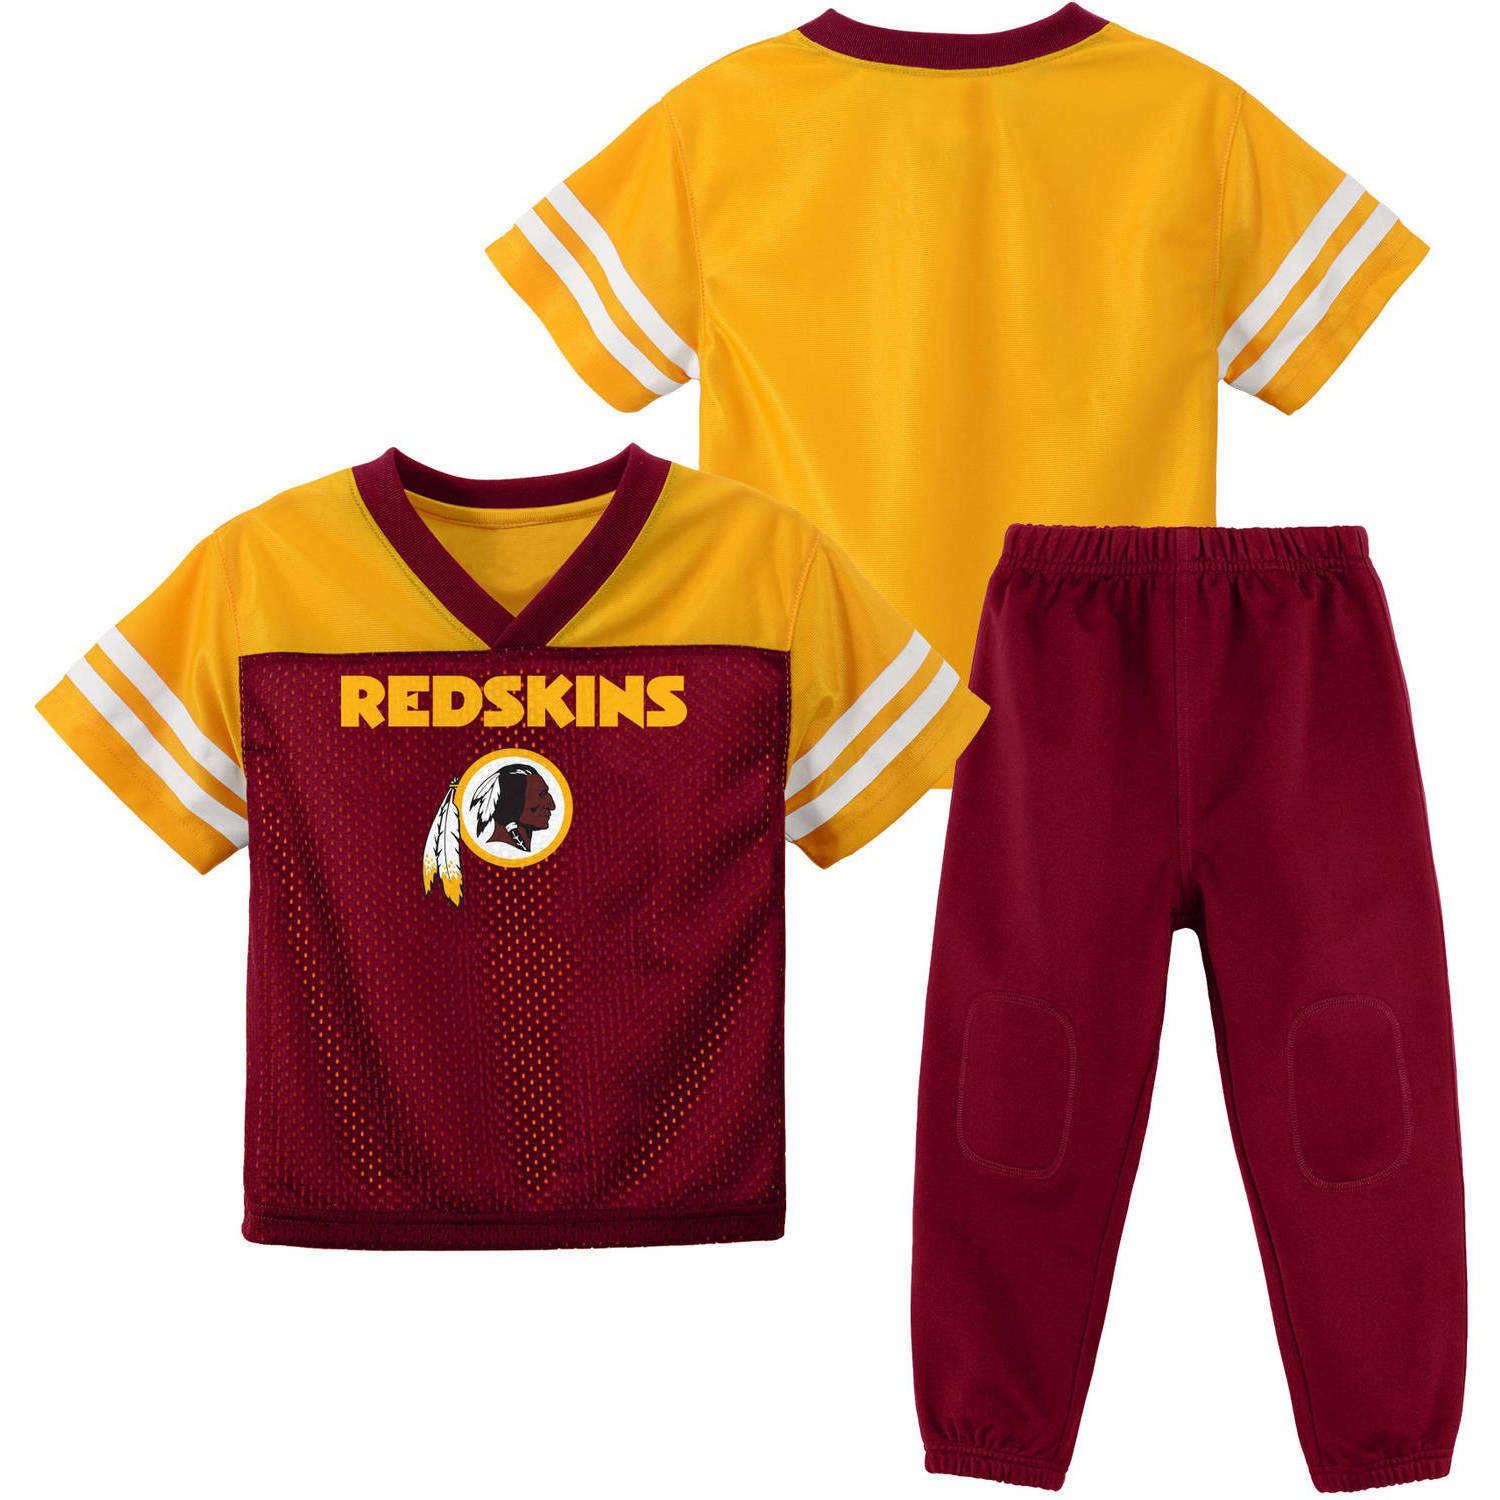 NFL Washinton Redskins Toddler Short Sleeve Top and Pant Set by